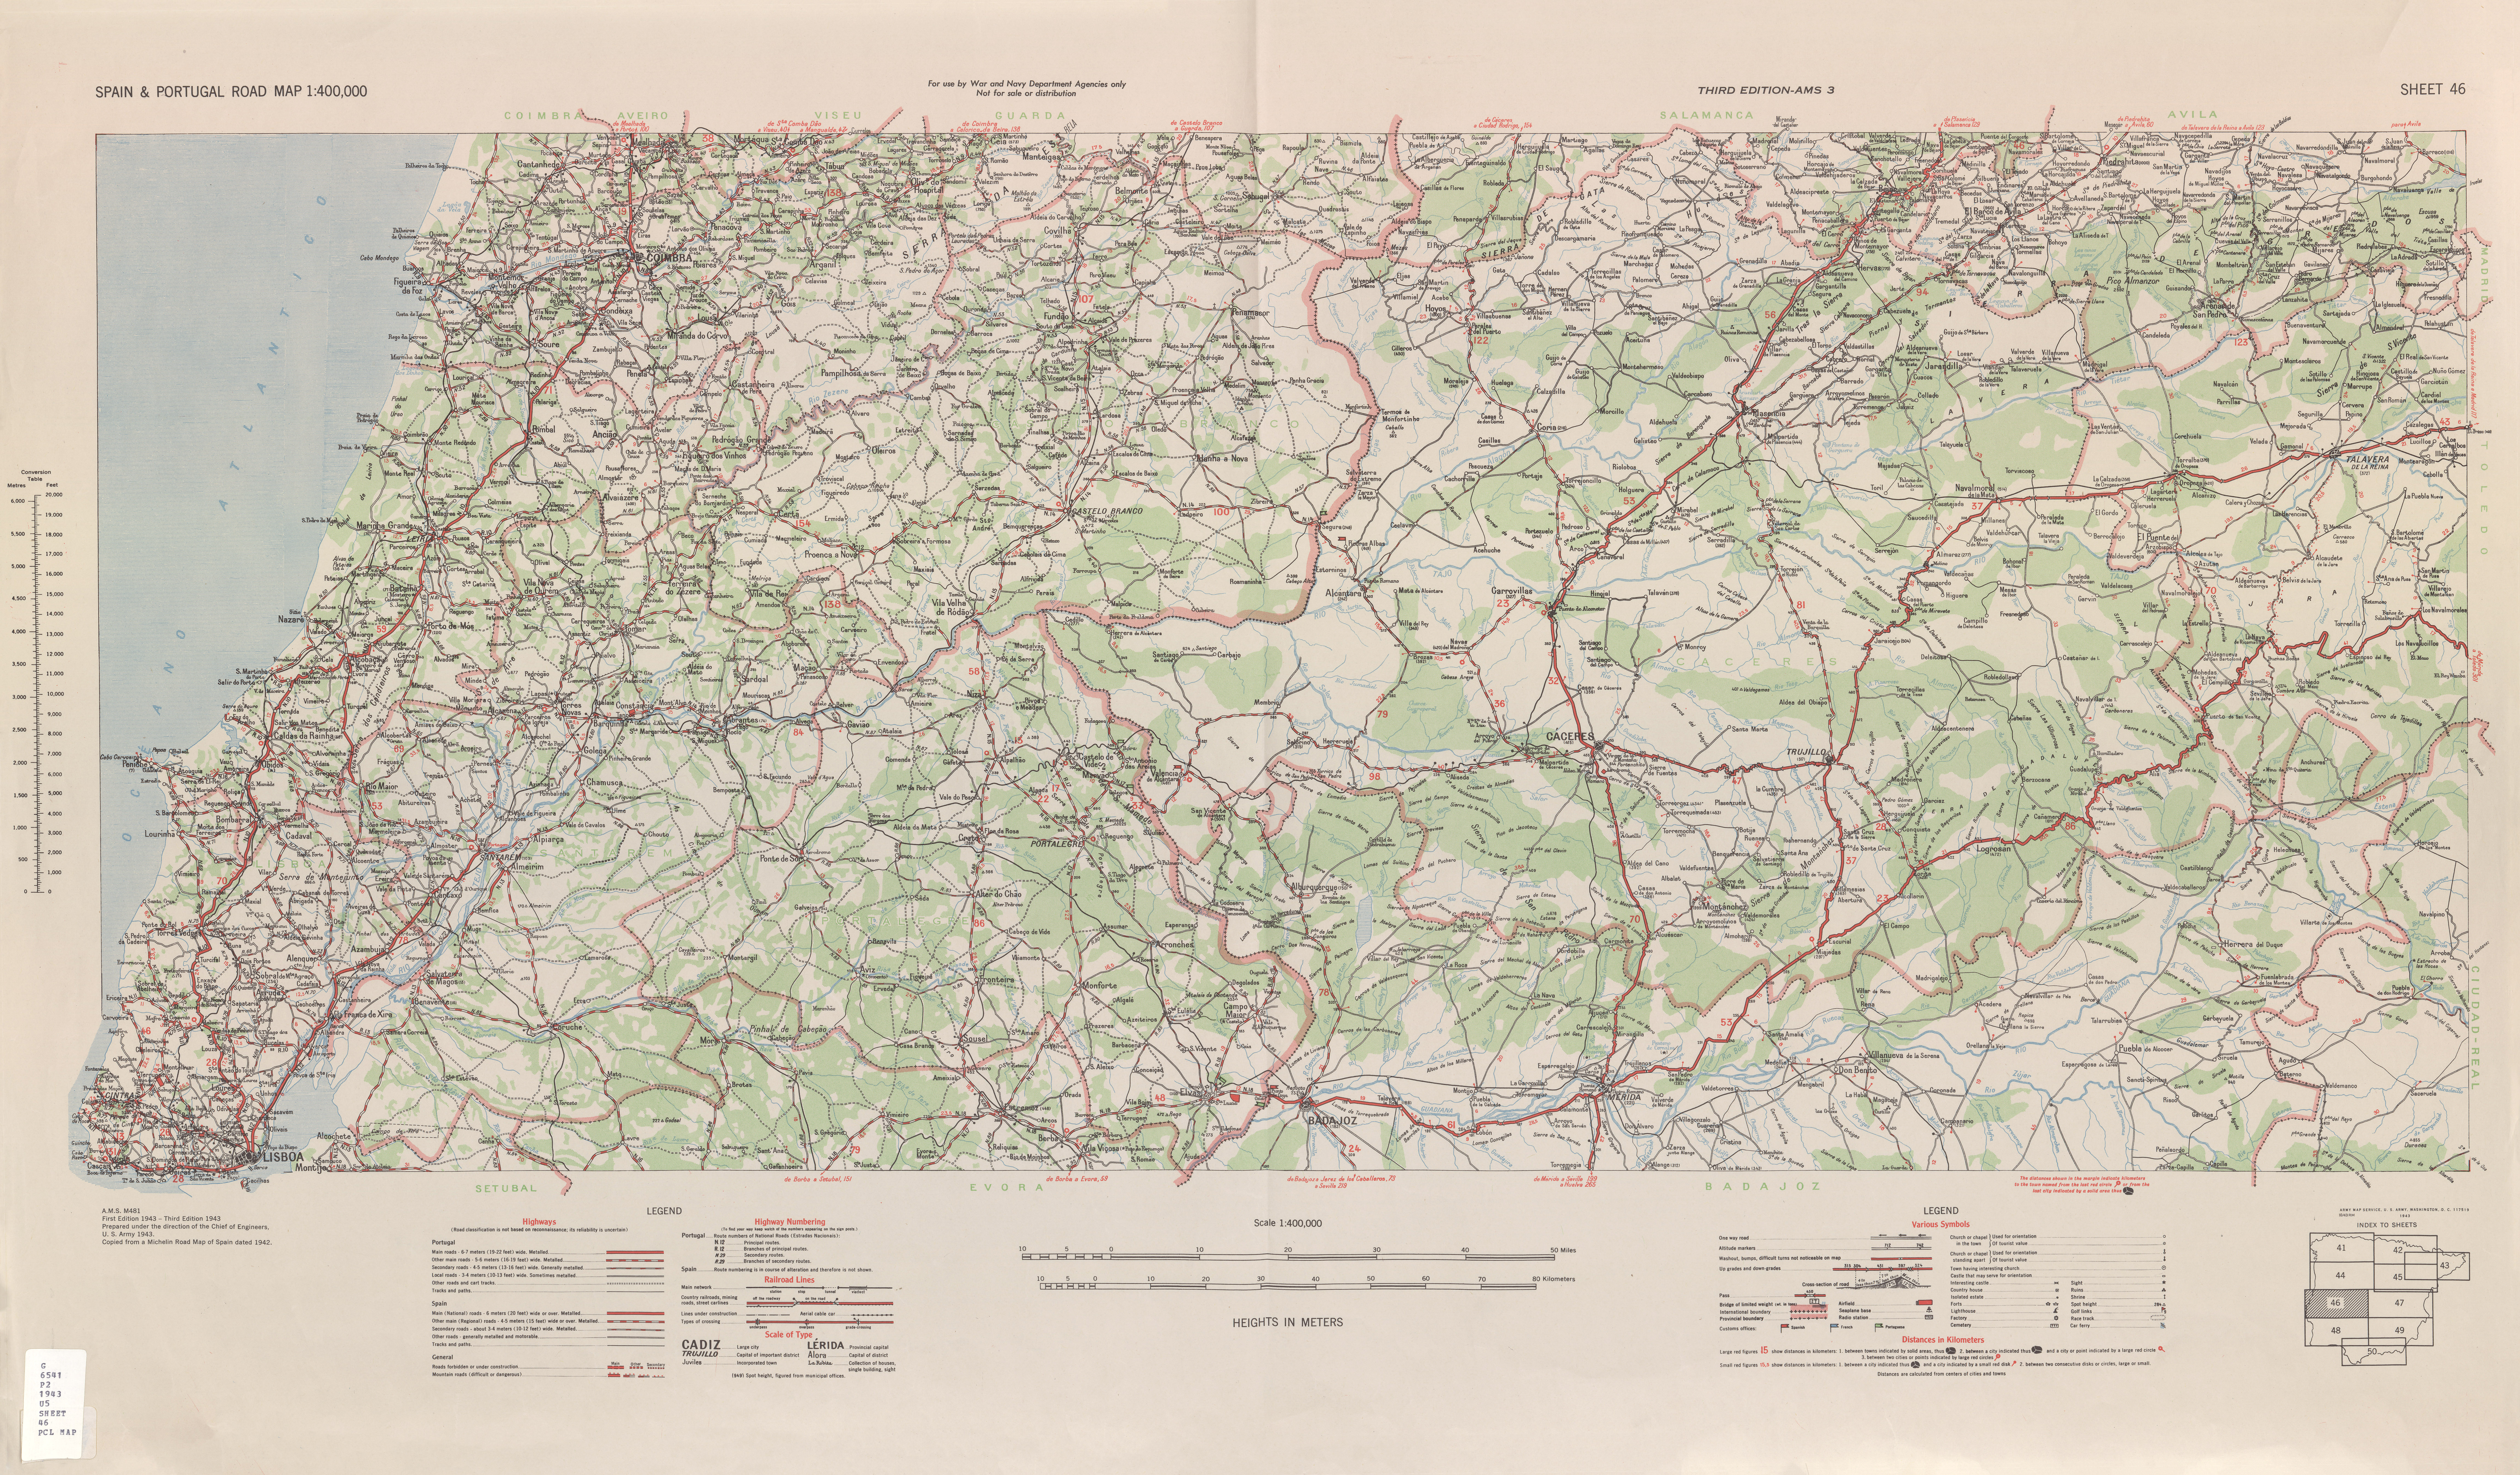 Road Map Of Portugal And Spain.Spain Portugal Road Map Ams Topographic Maps Perry Castaa Eda